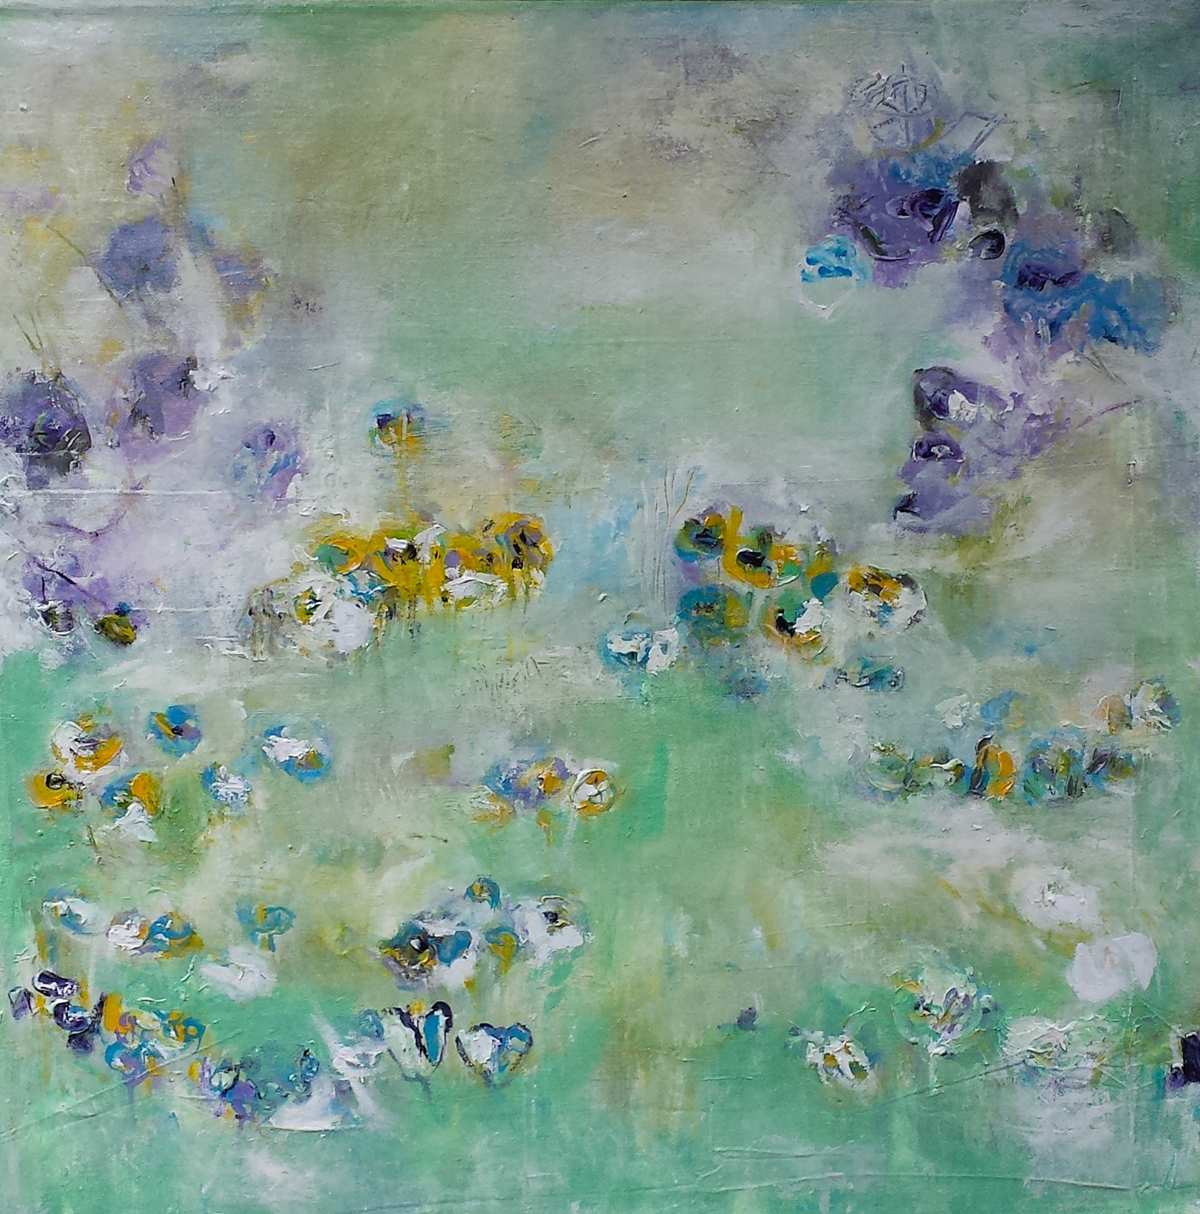 Painting by Hela Donela: A Garden For Dreamingg